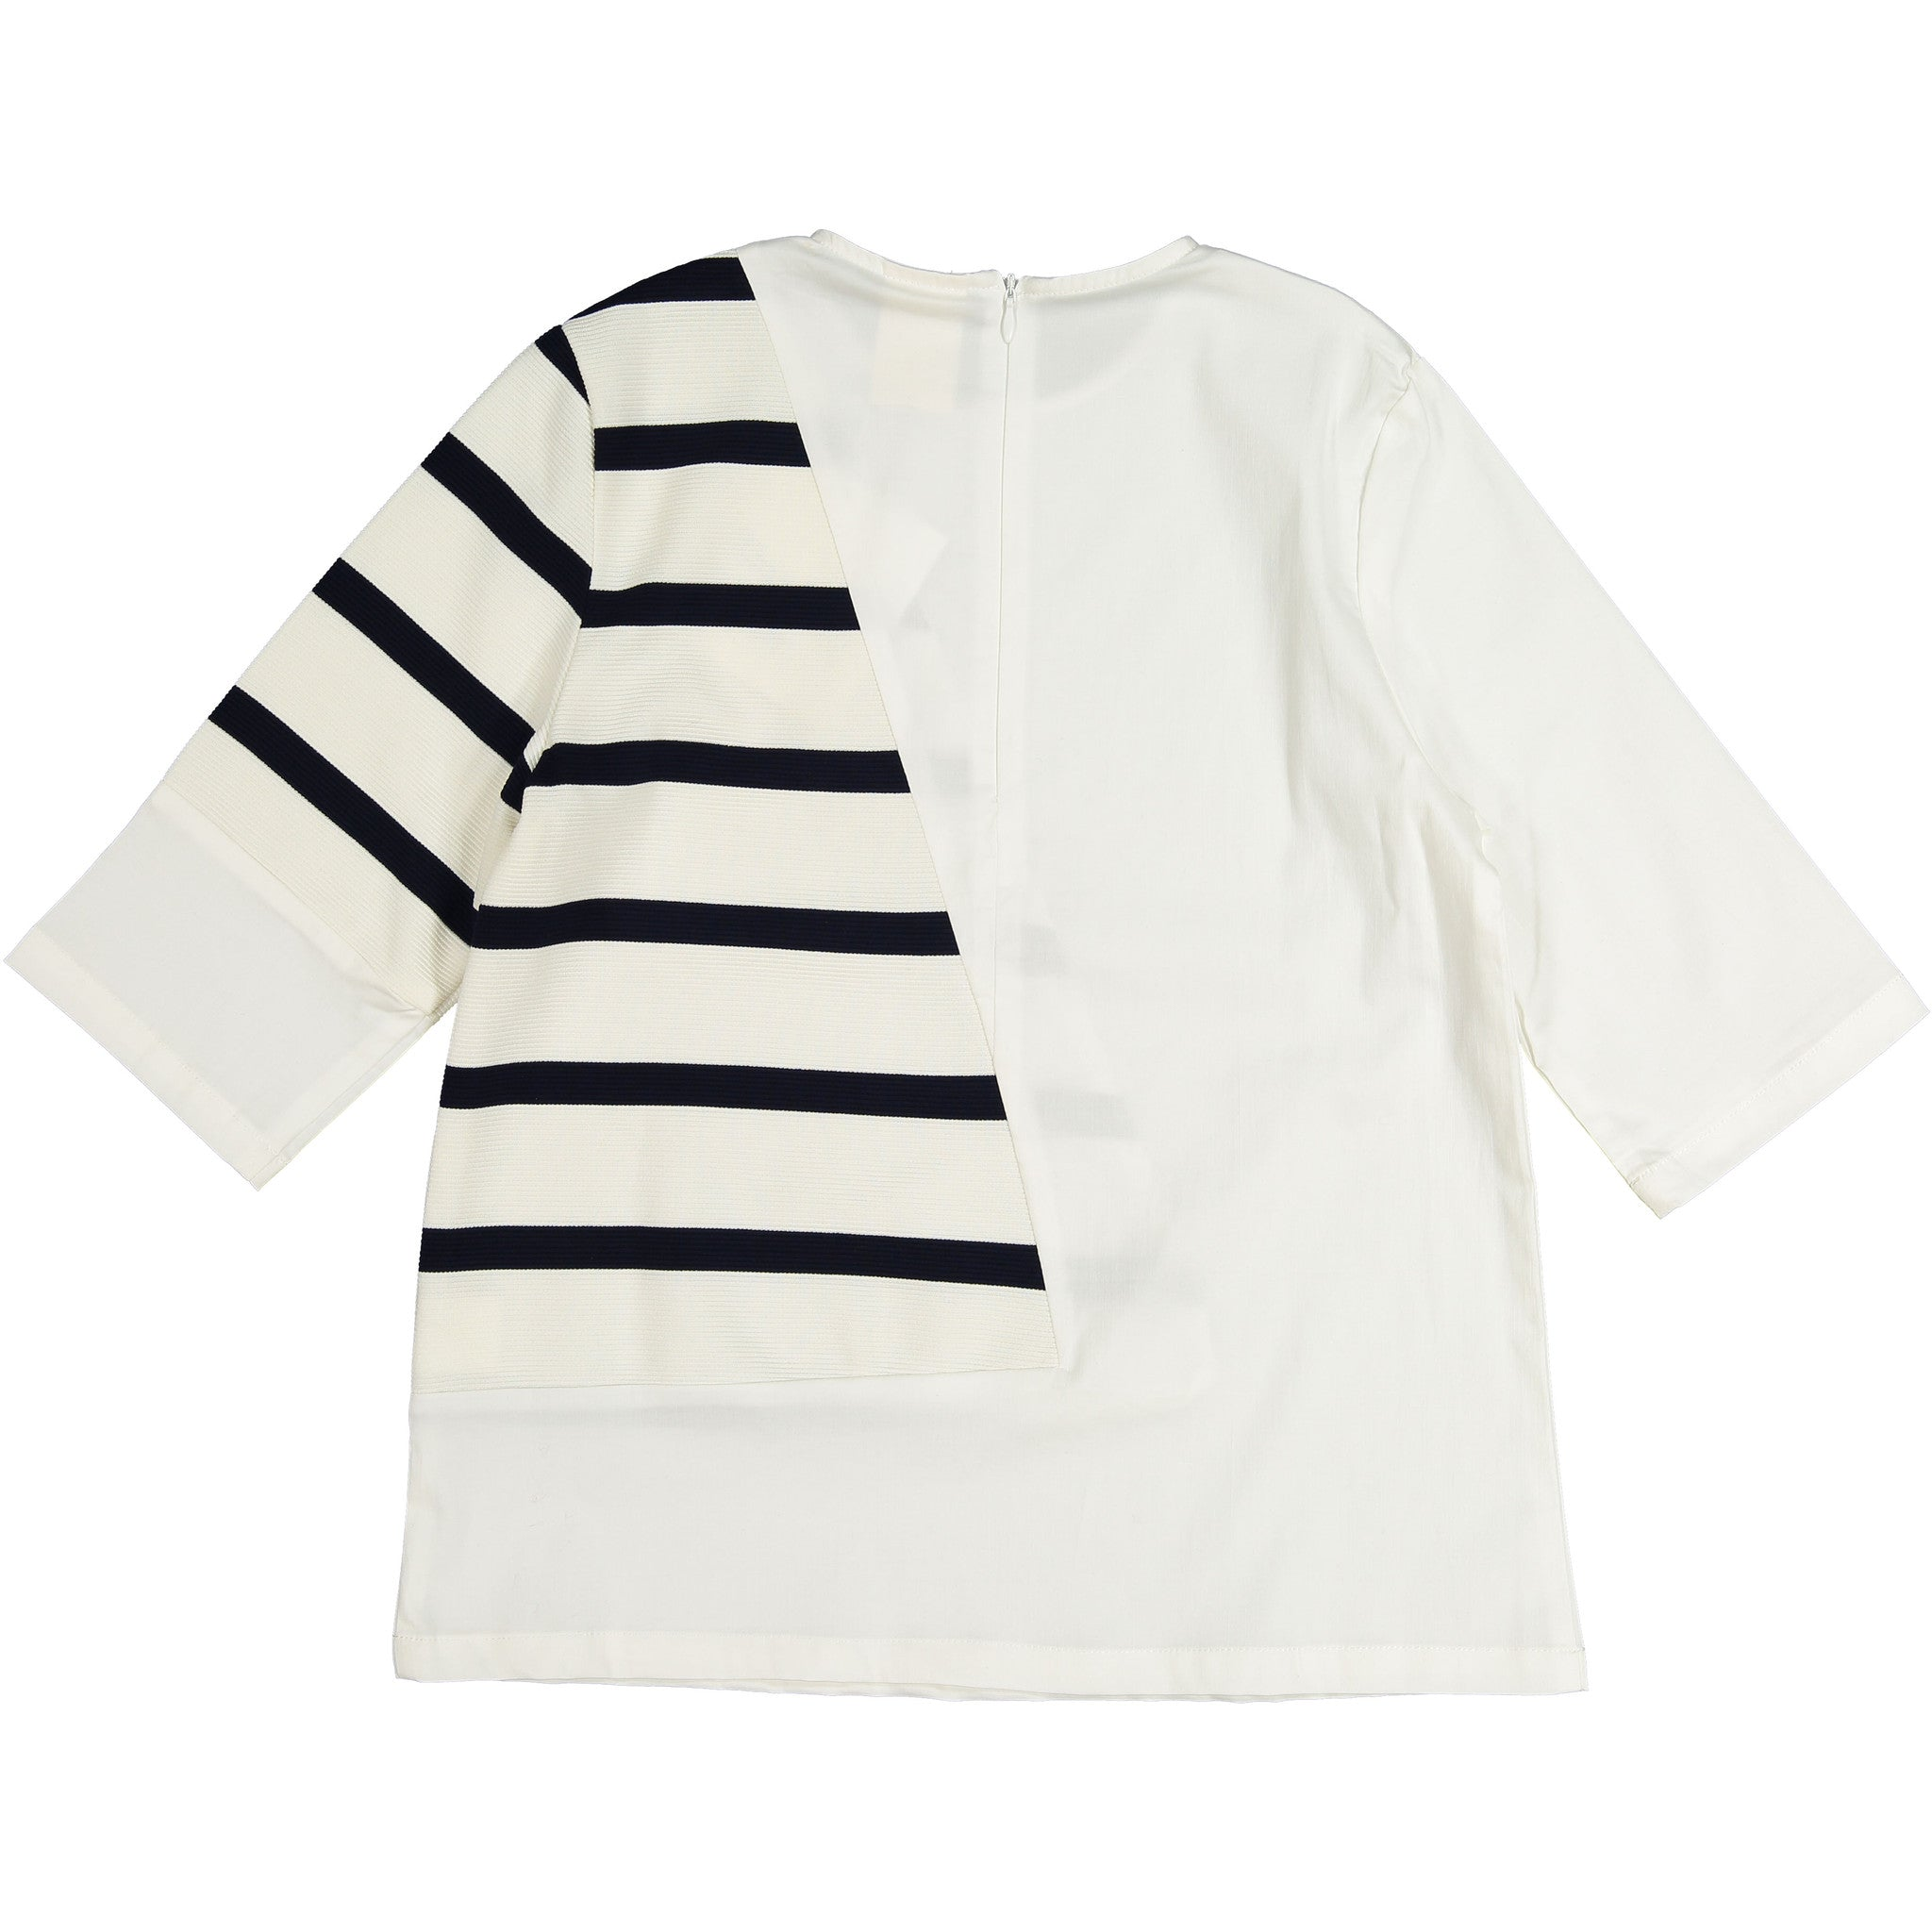 A4 White/Stripe top - Ladida